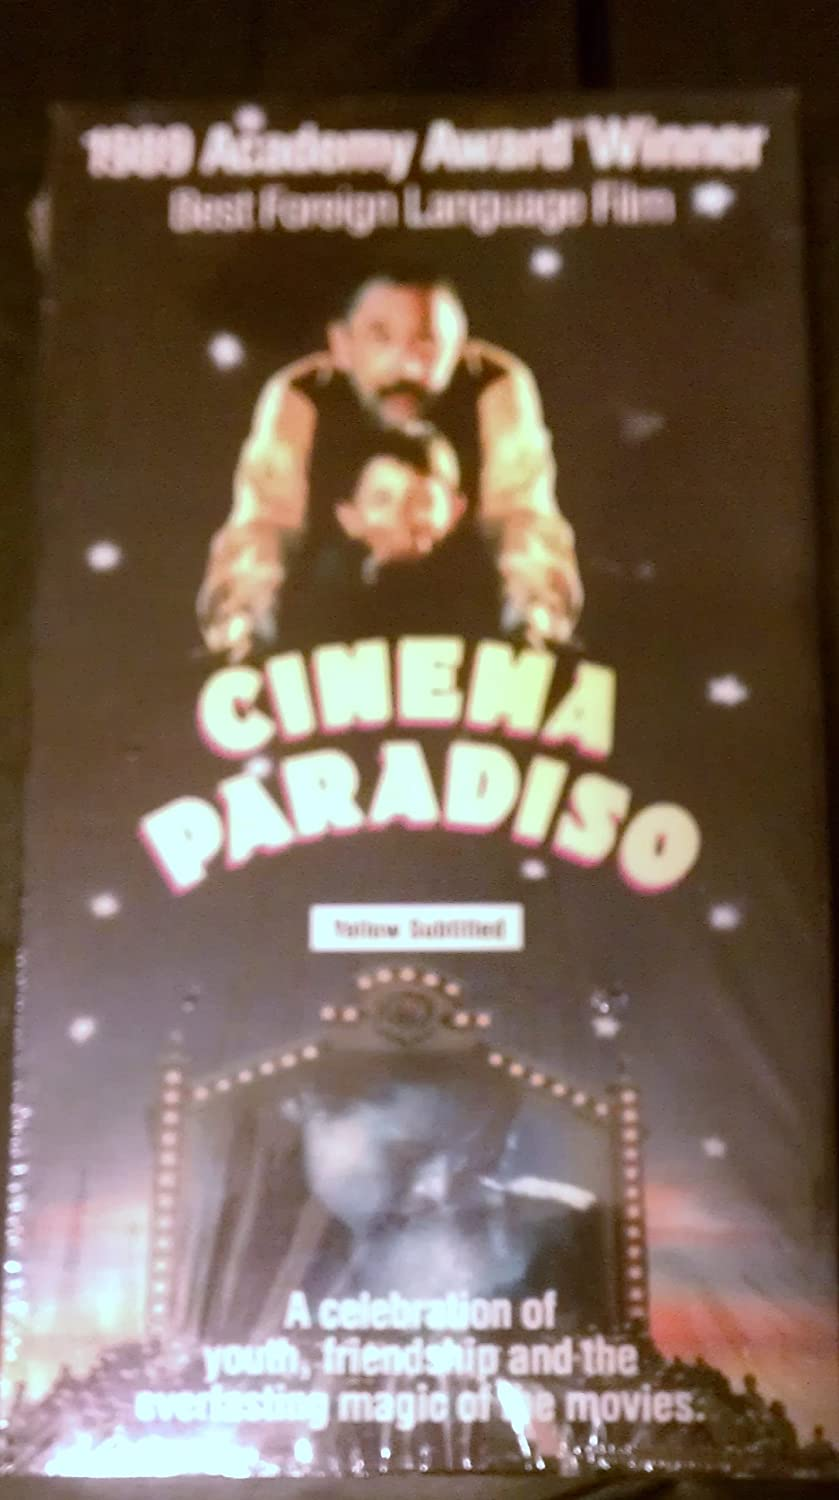 Amazon Com Cinema Paradiso Dubbed 1989 Academy Award Winner Philippe Noiret Jacques Perrin Movies Tv